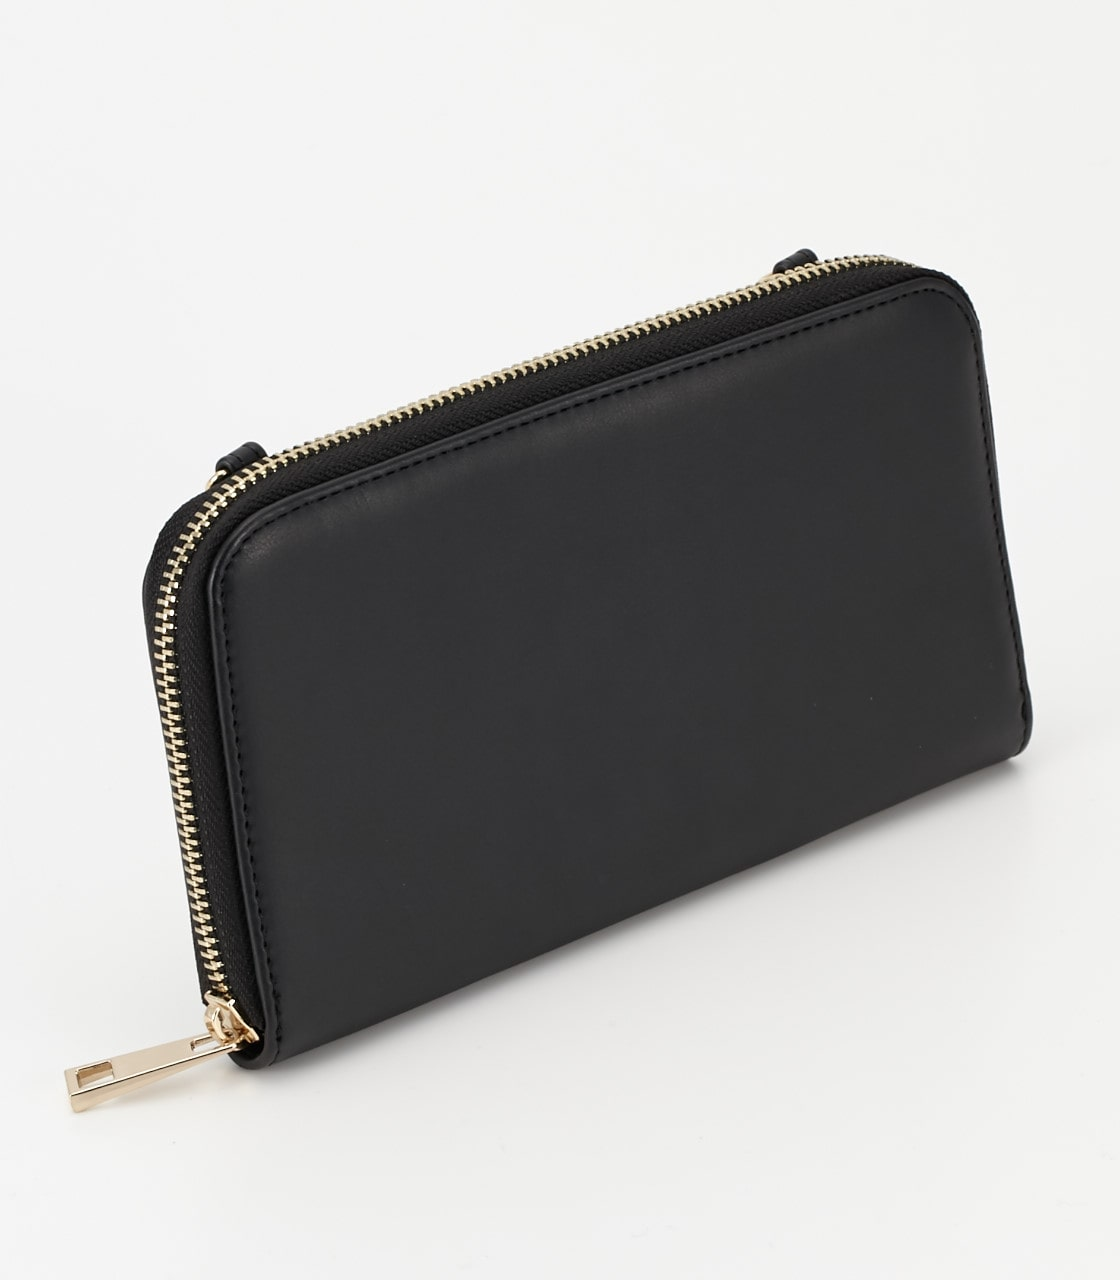 【AZUL BY MOUSSY】サークルリングウォレットバッグ 詳細画像 BLK 6